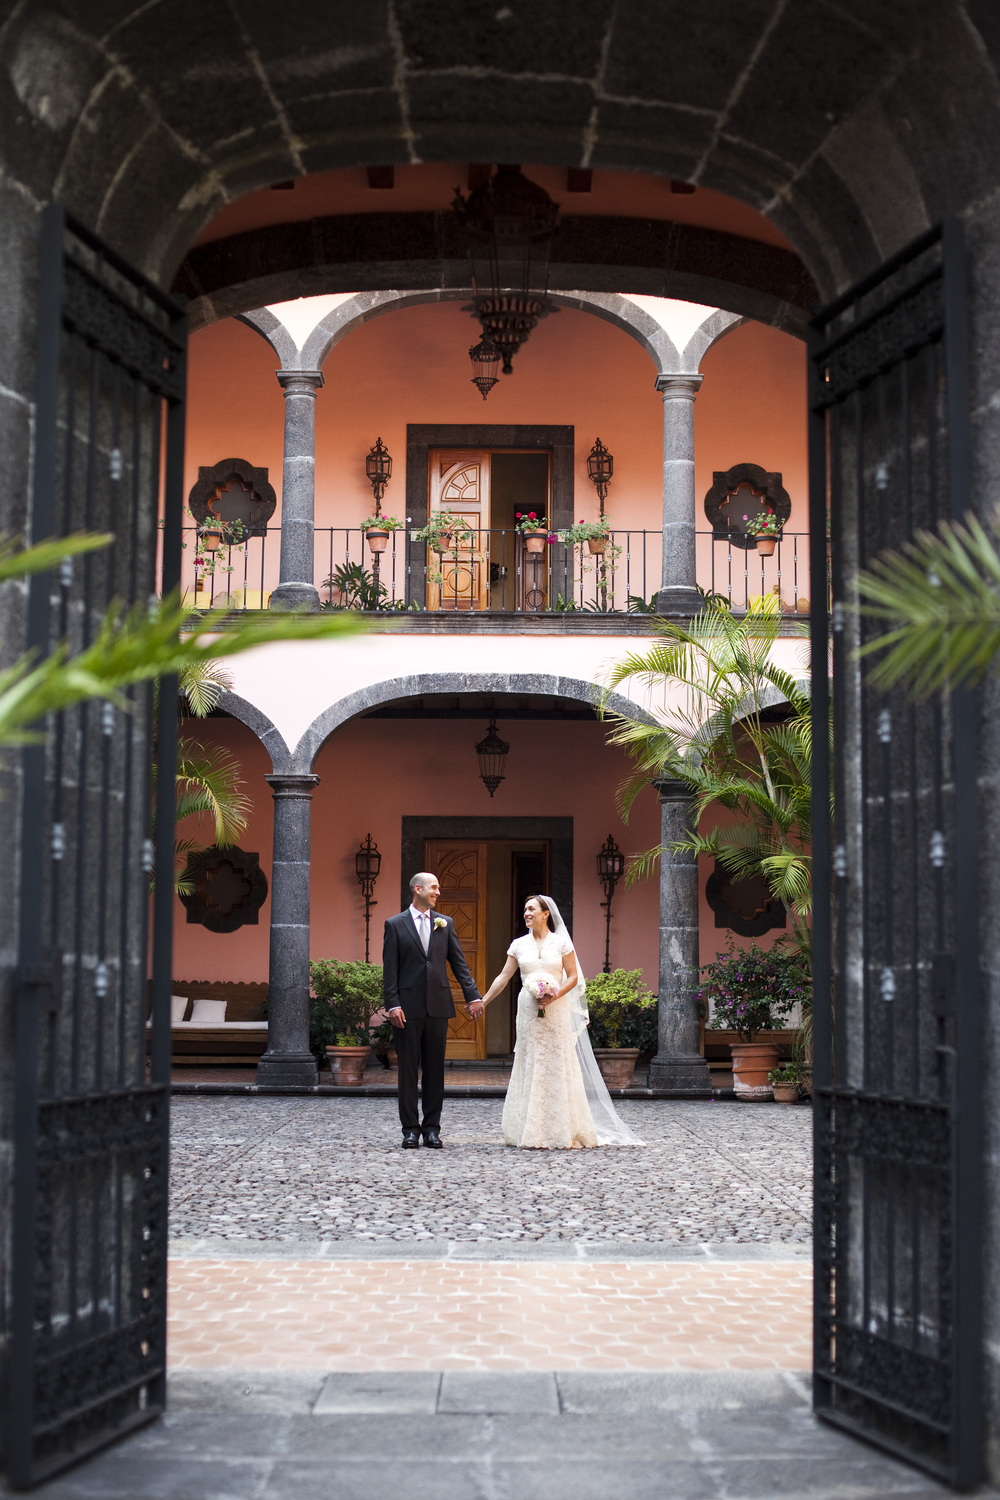 Ceci_New_York_Style_Luxury_Custom_Mexico_Wedding_CeciBride_Letterpress_NewYork_Foil_Hacienda_de_San_Antonio_35.jpg